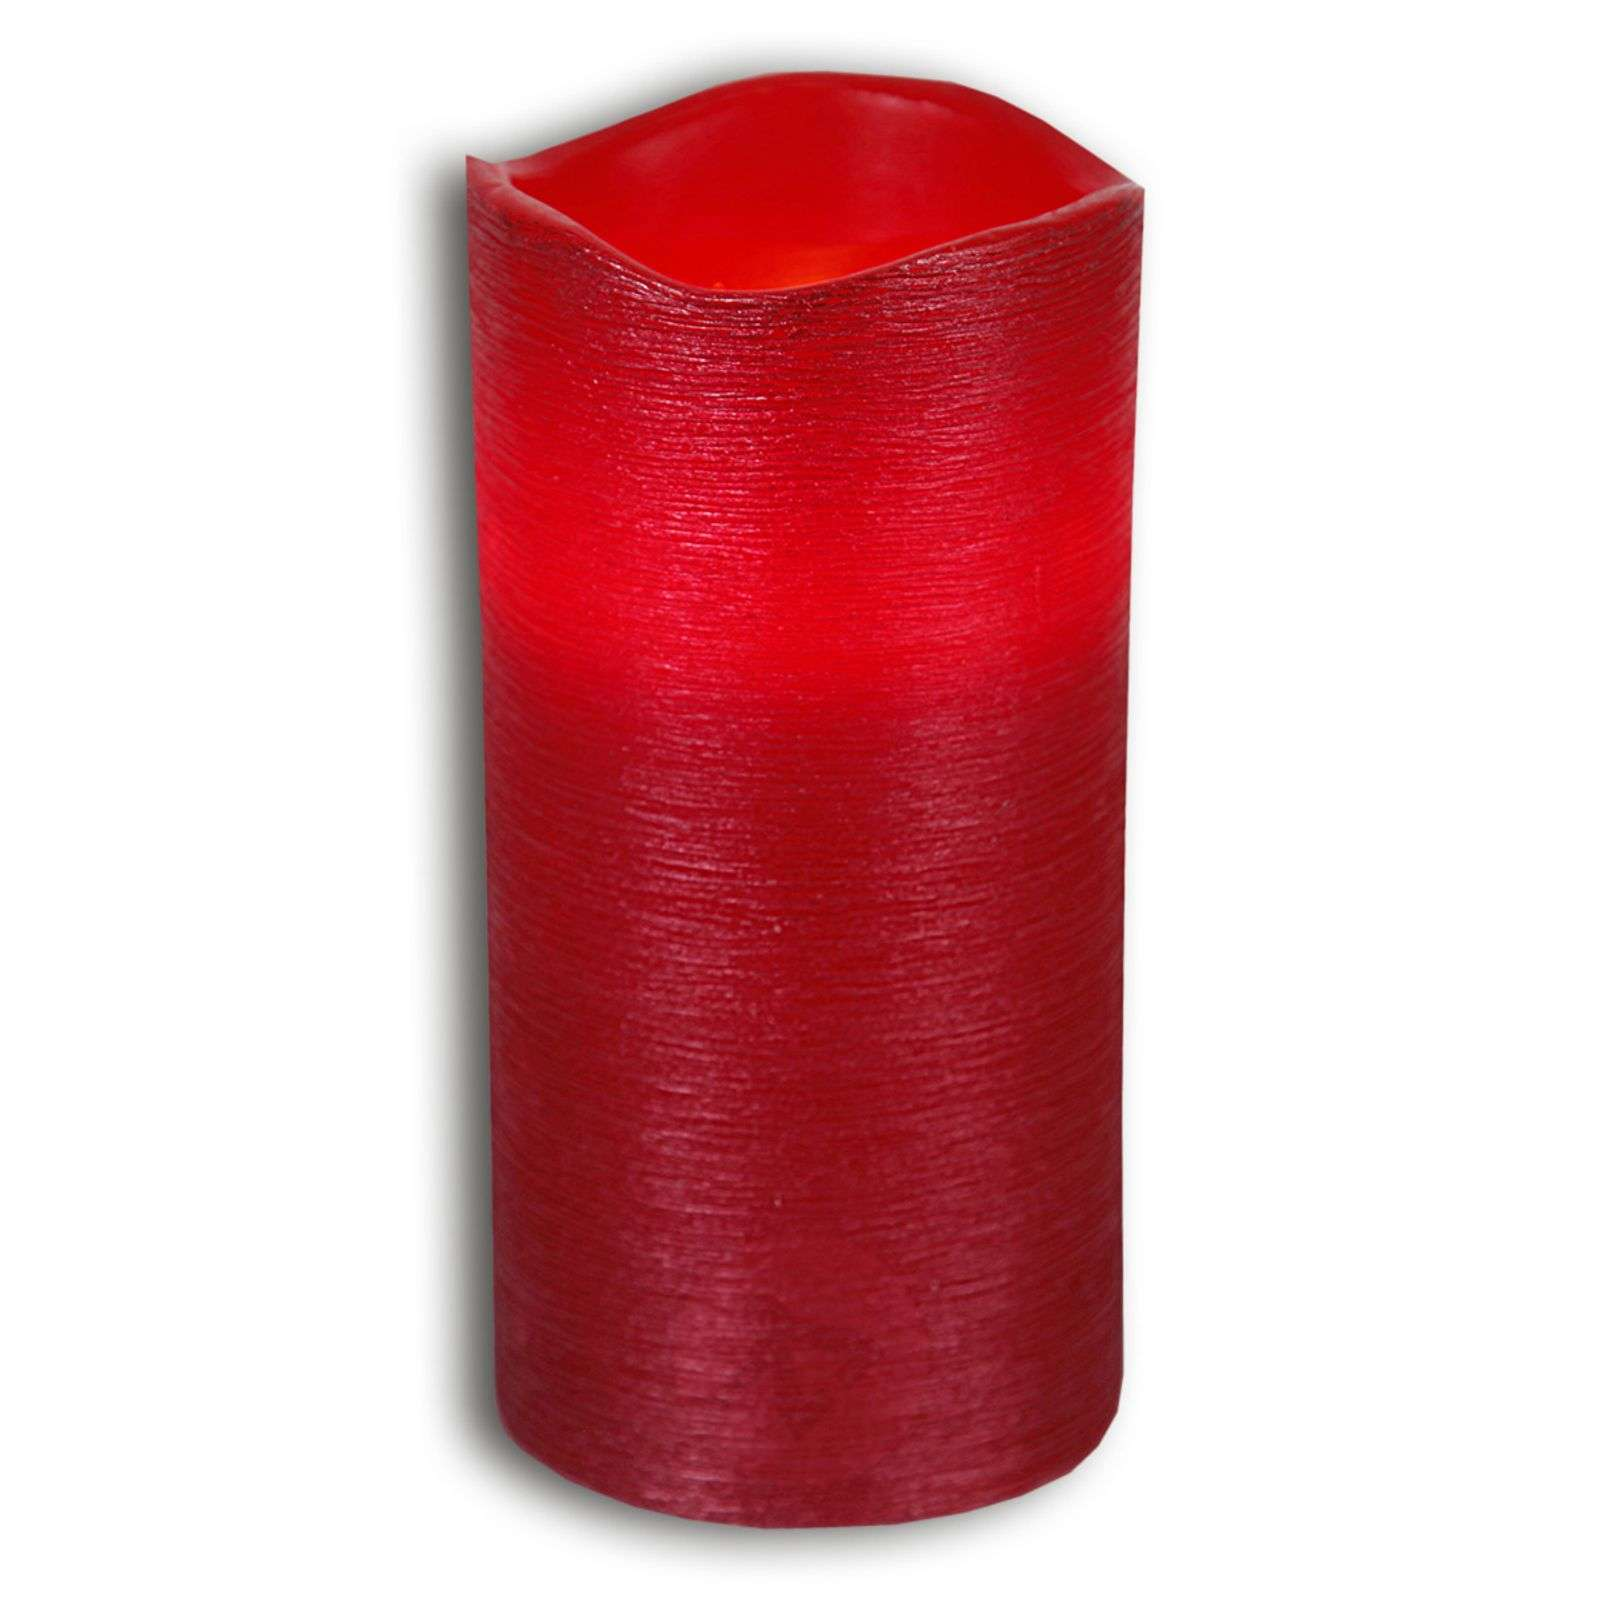 Red real waxLED candle Linda structured 15 cm-1522544-01